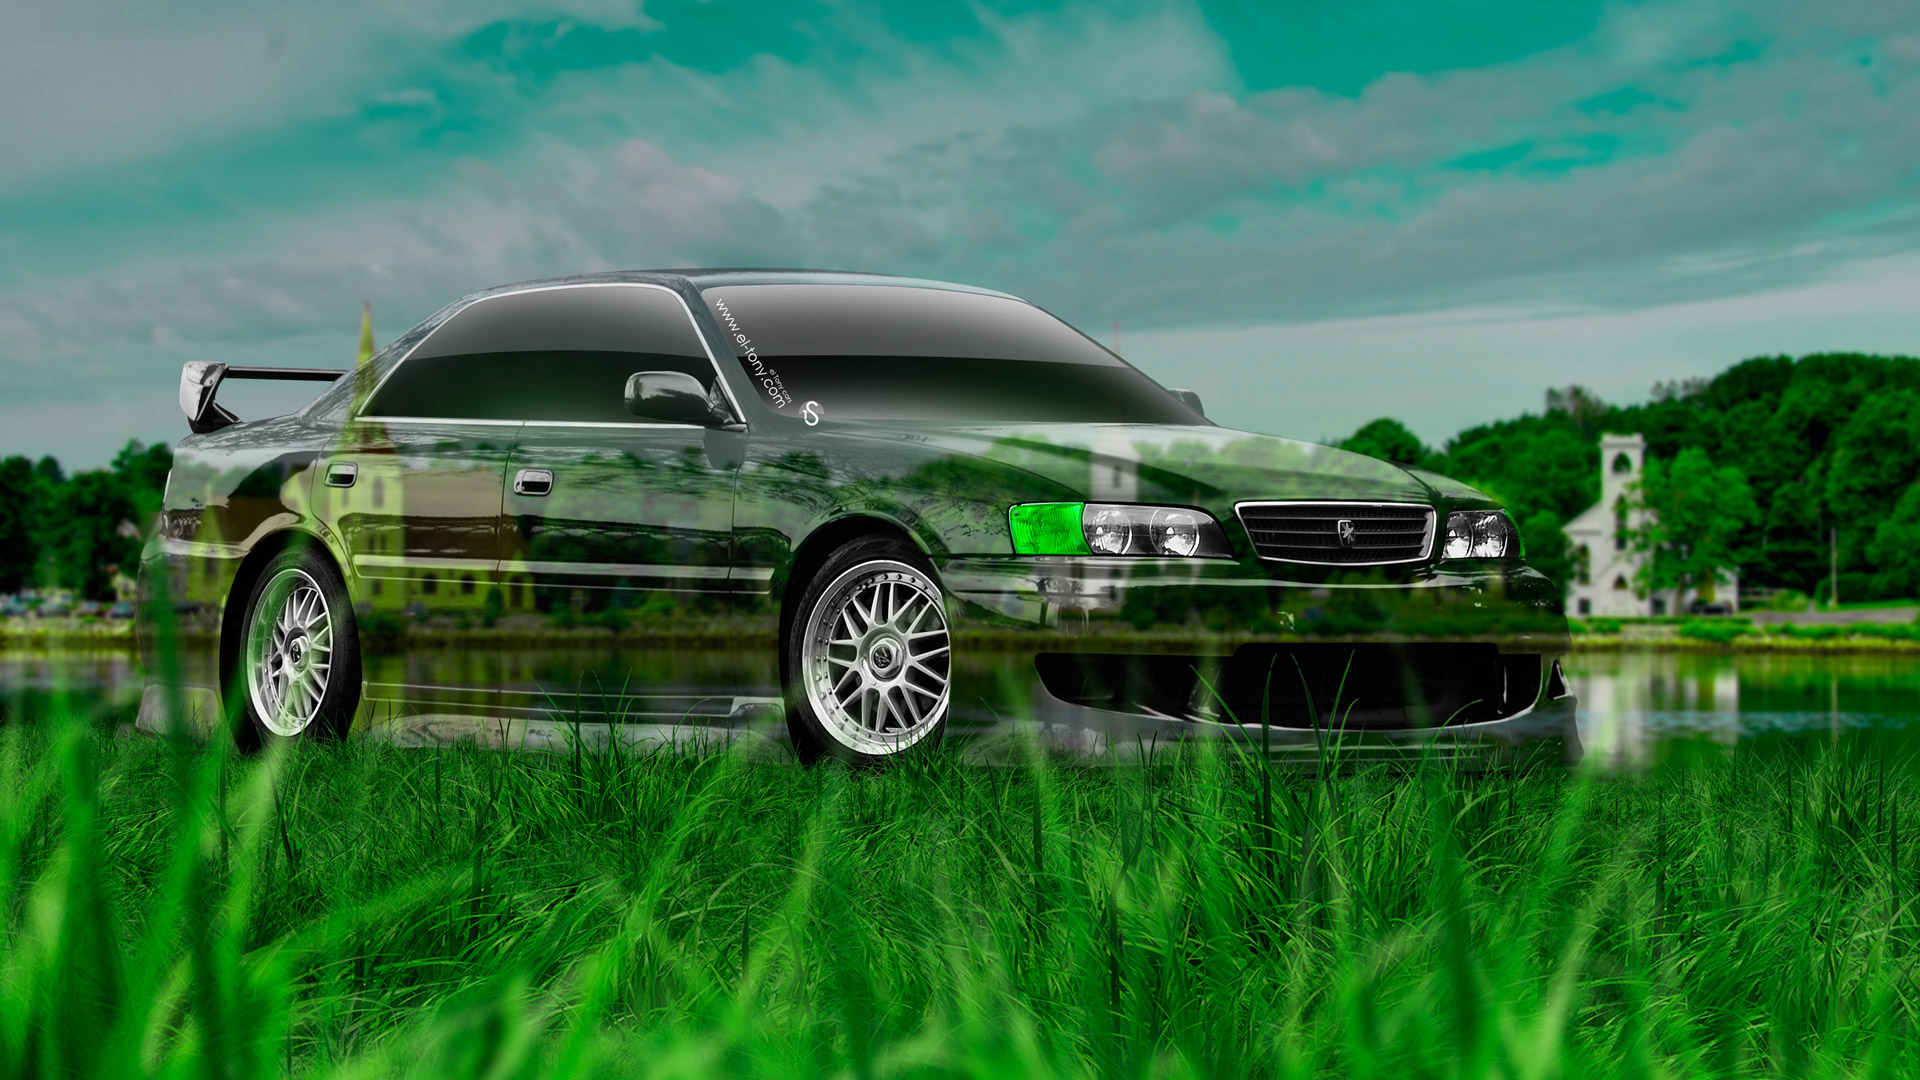 Toyota Chaser JZX100 JDM Crystal Nature Car 2014